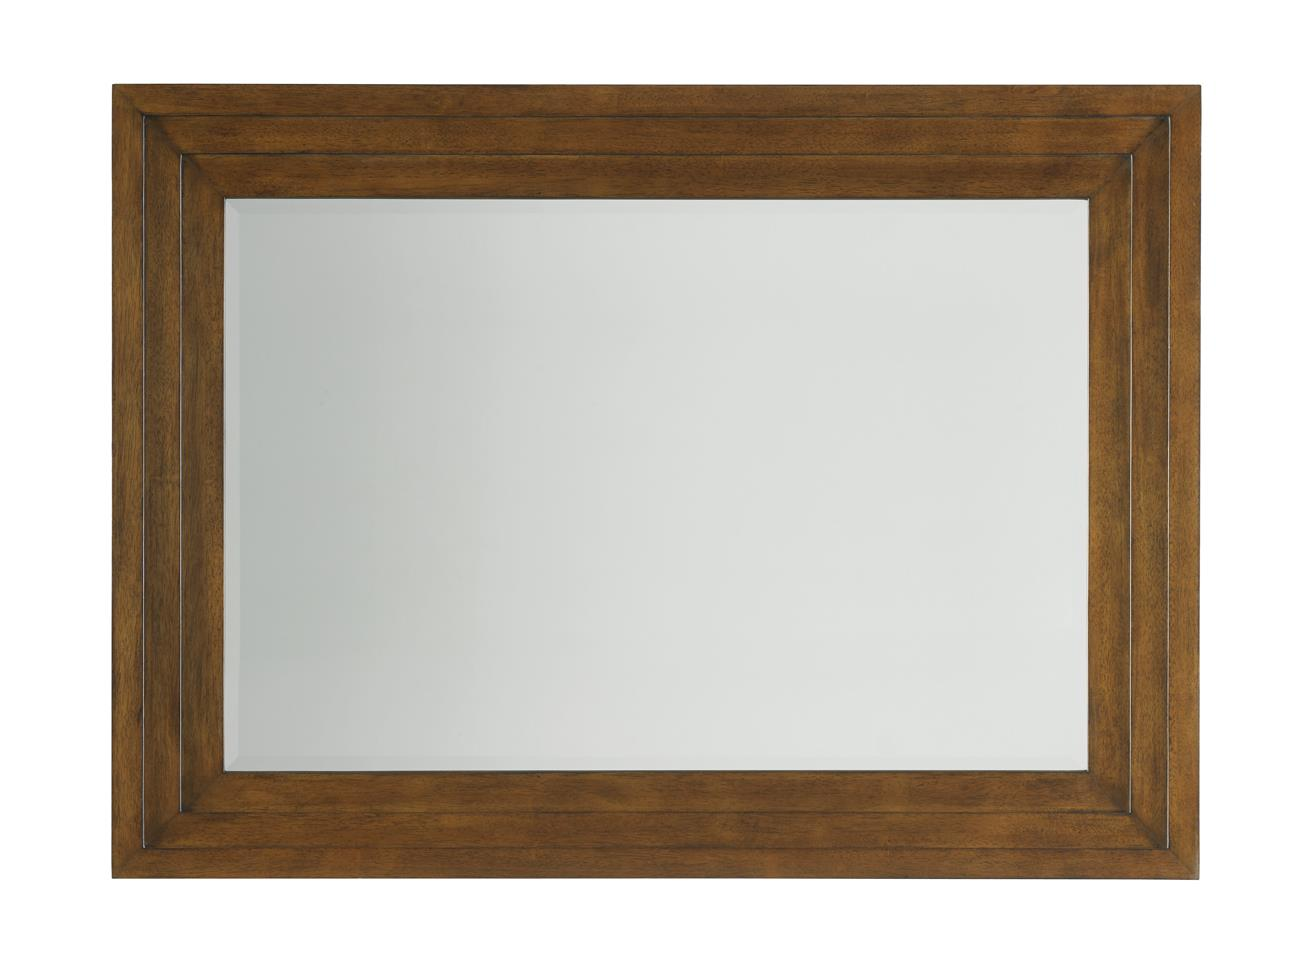 Island Fusion Luzon Landscape Mirror by Tommy Bahama Home at Baer's Furniture